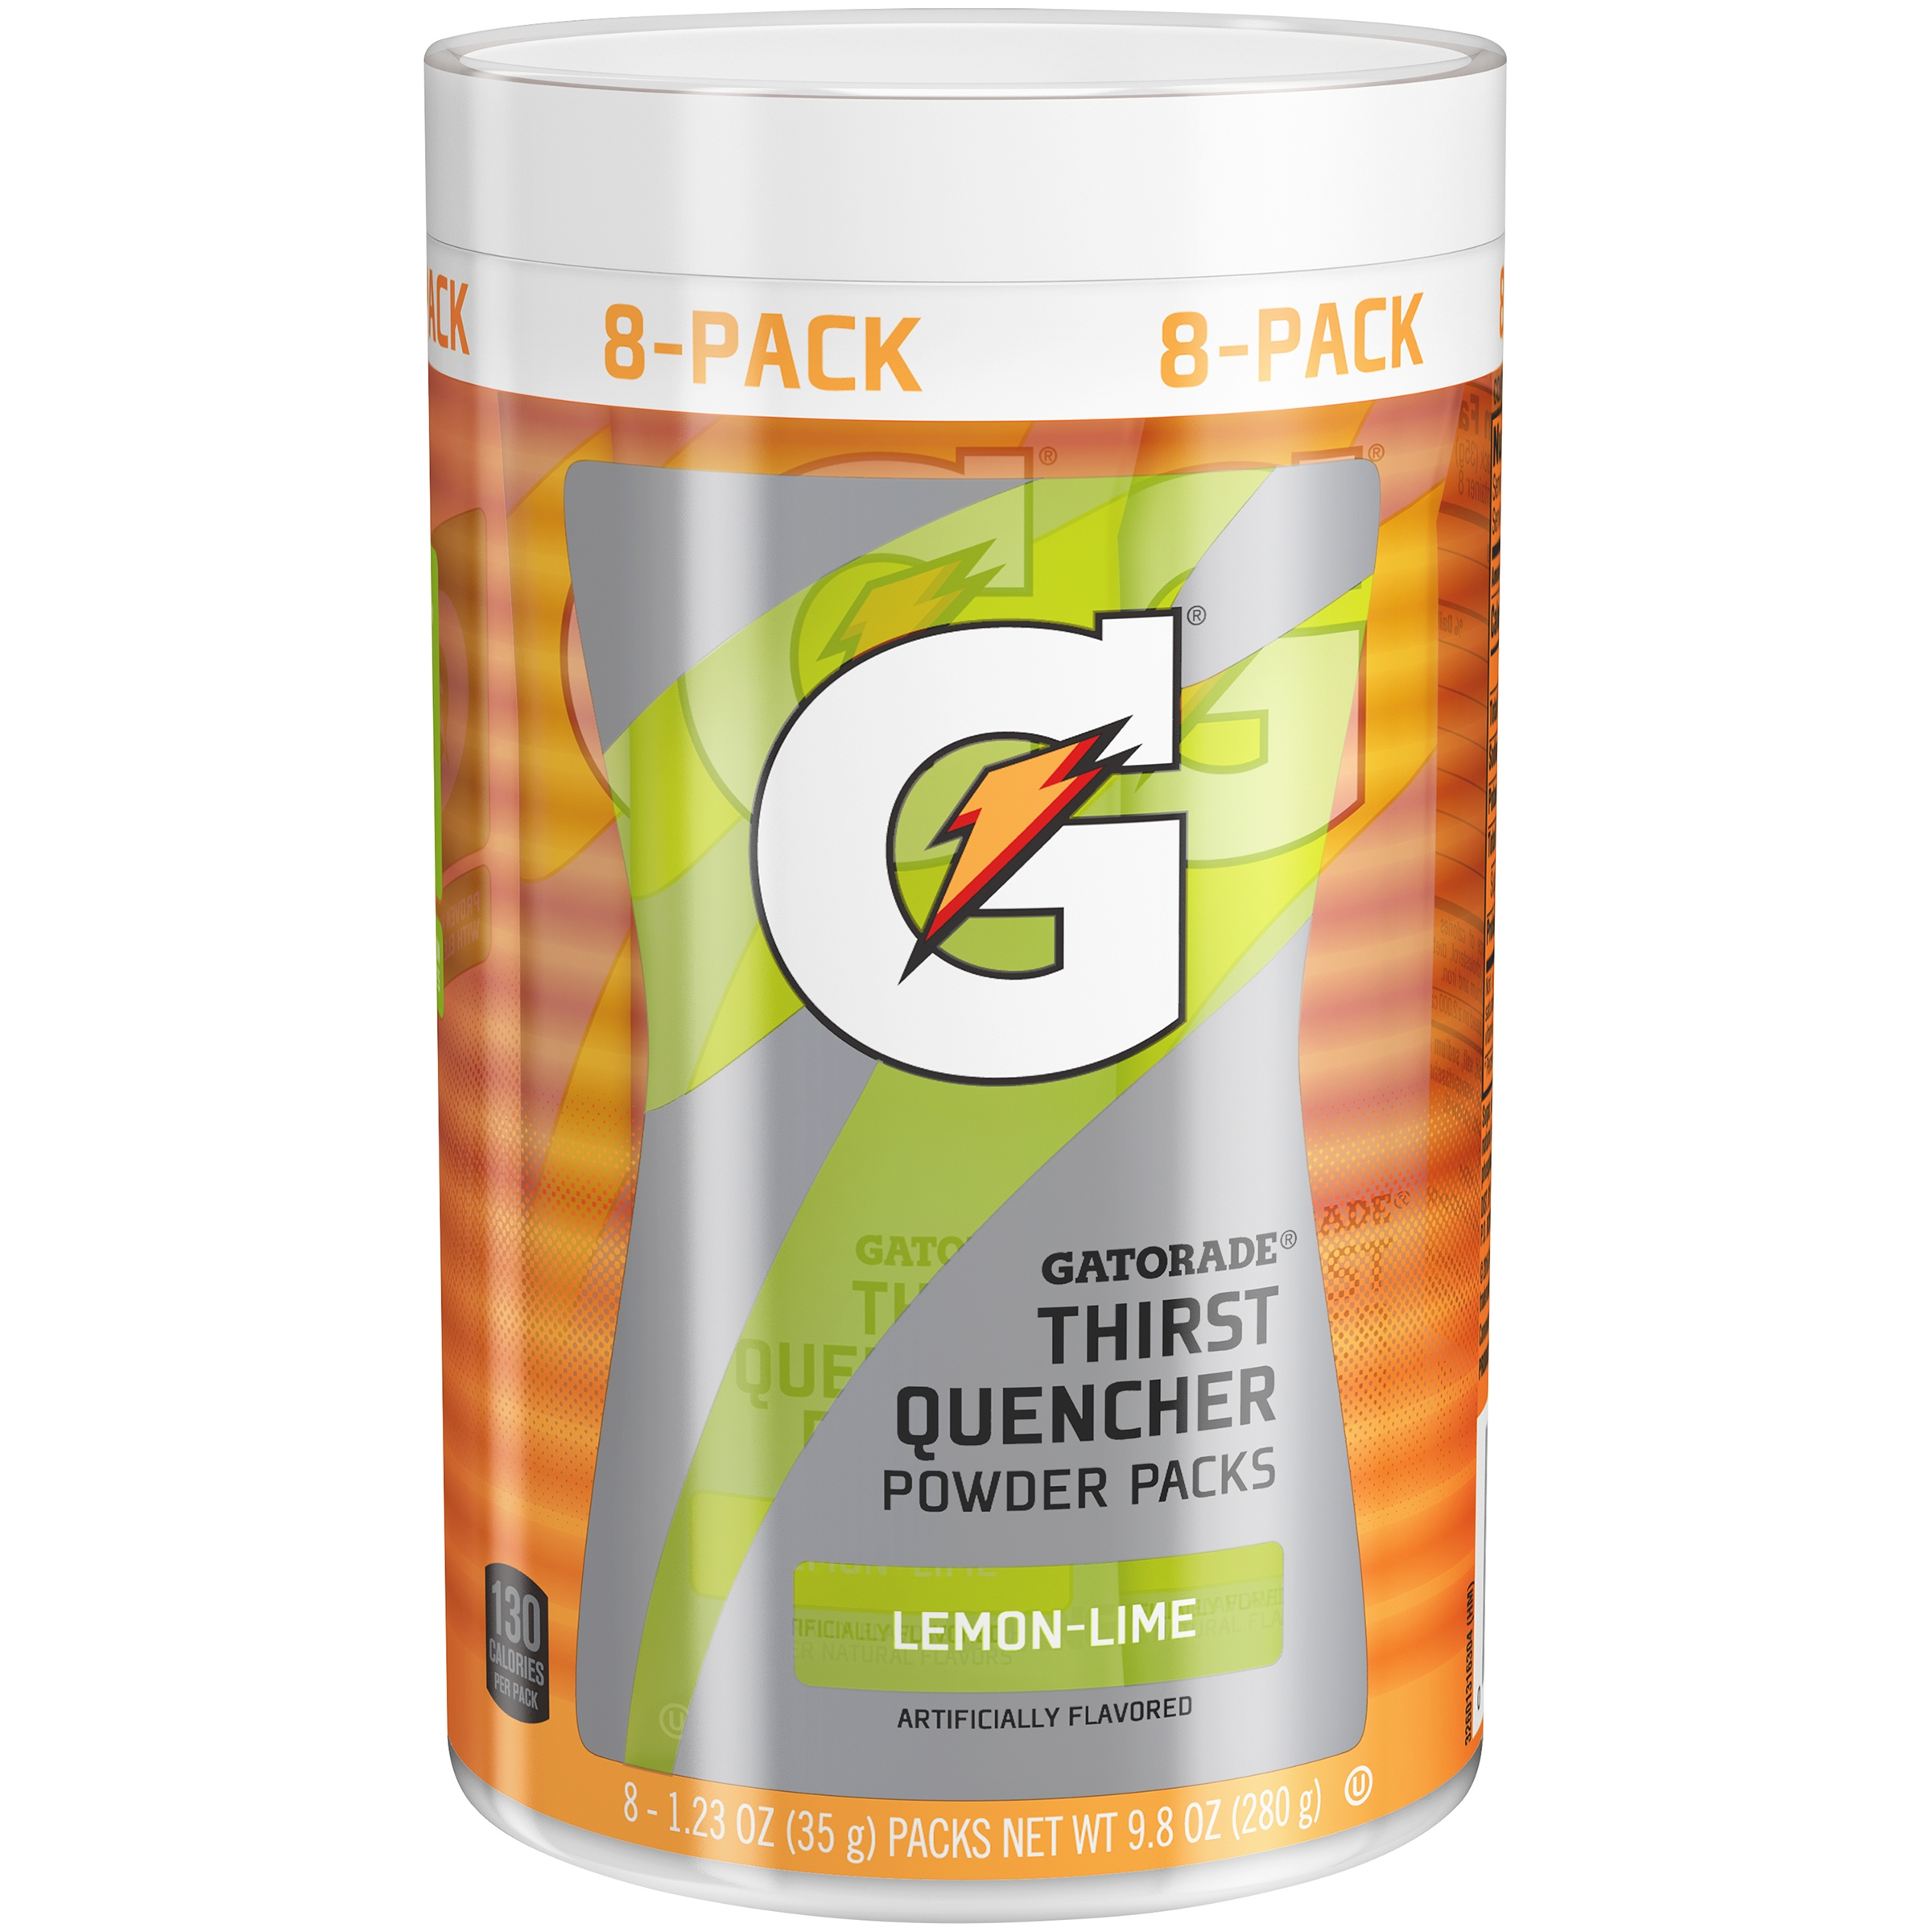 Gatorade® Lemon-Lime Thirst Quencher Powder Packs 8-1.23 ...